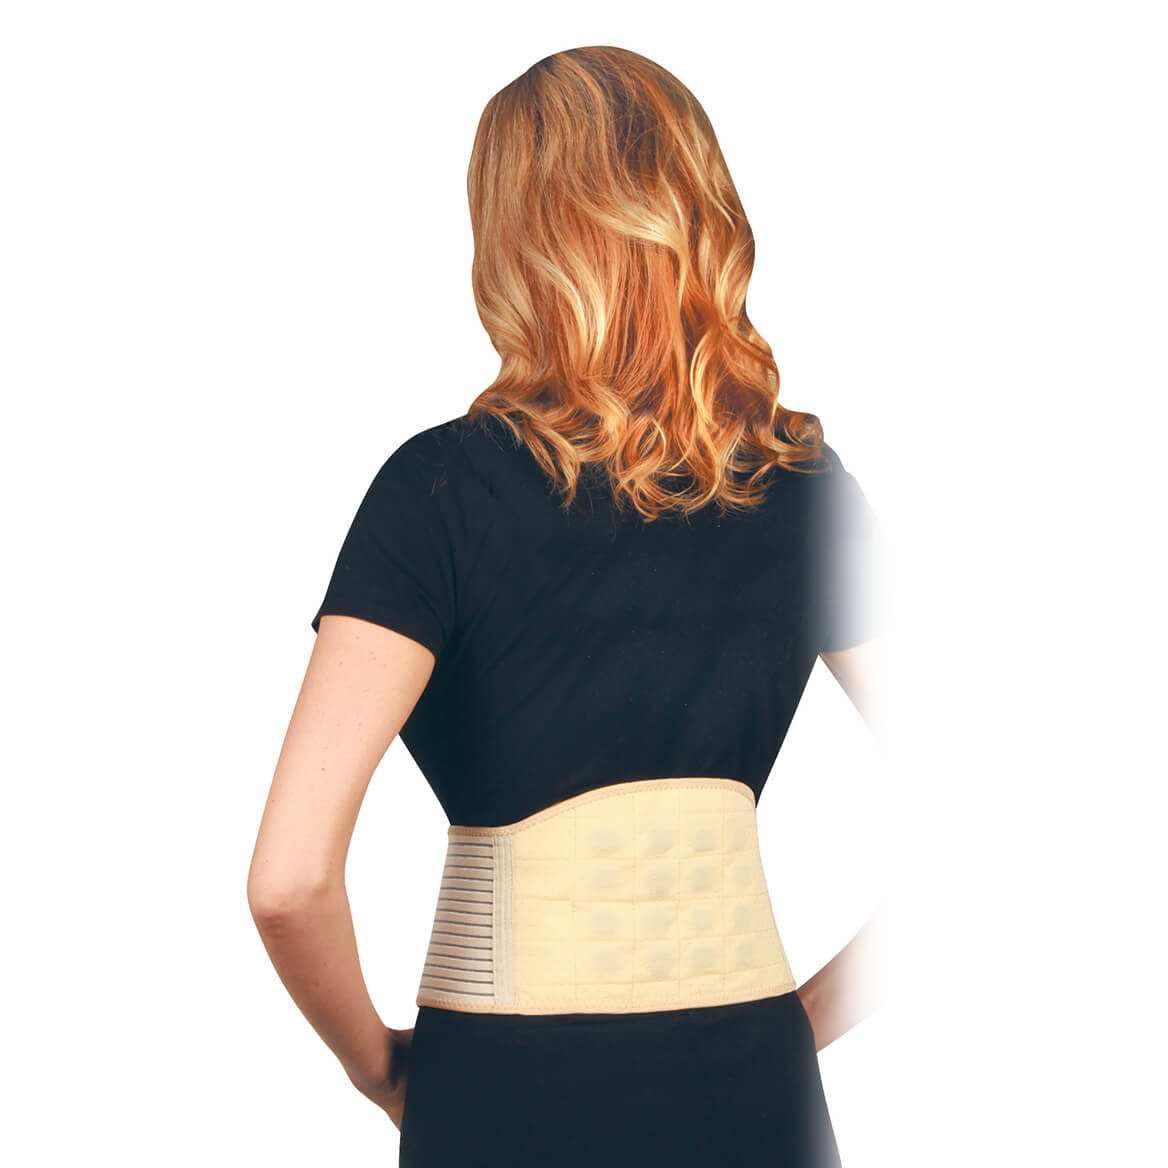 Therapeutic Magnetic Waist Support-370053